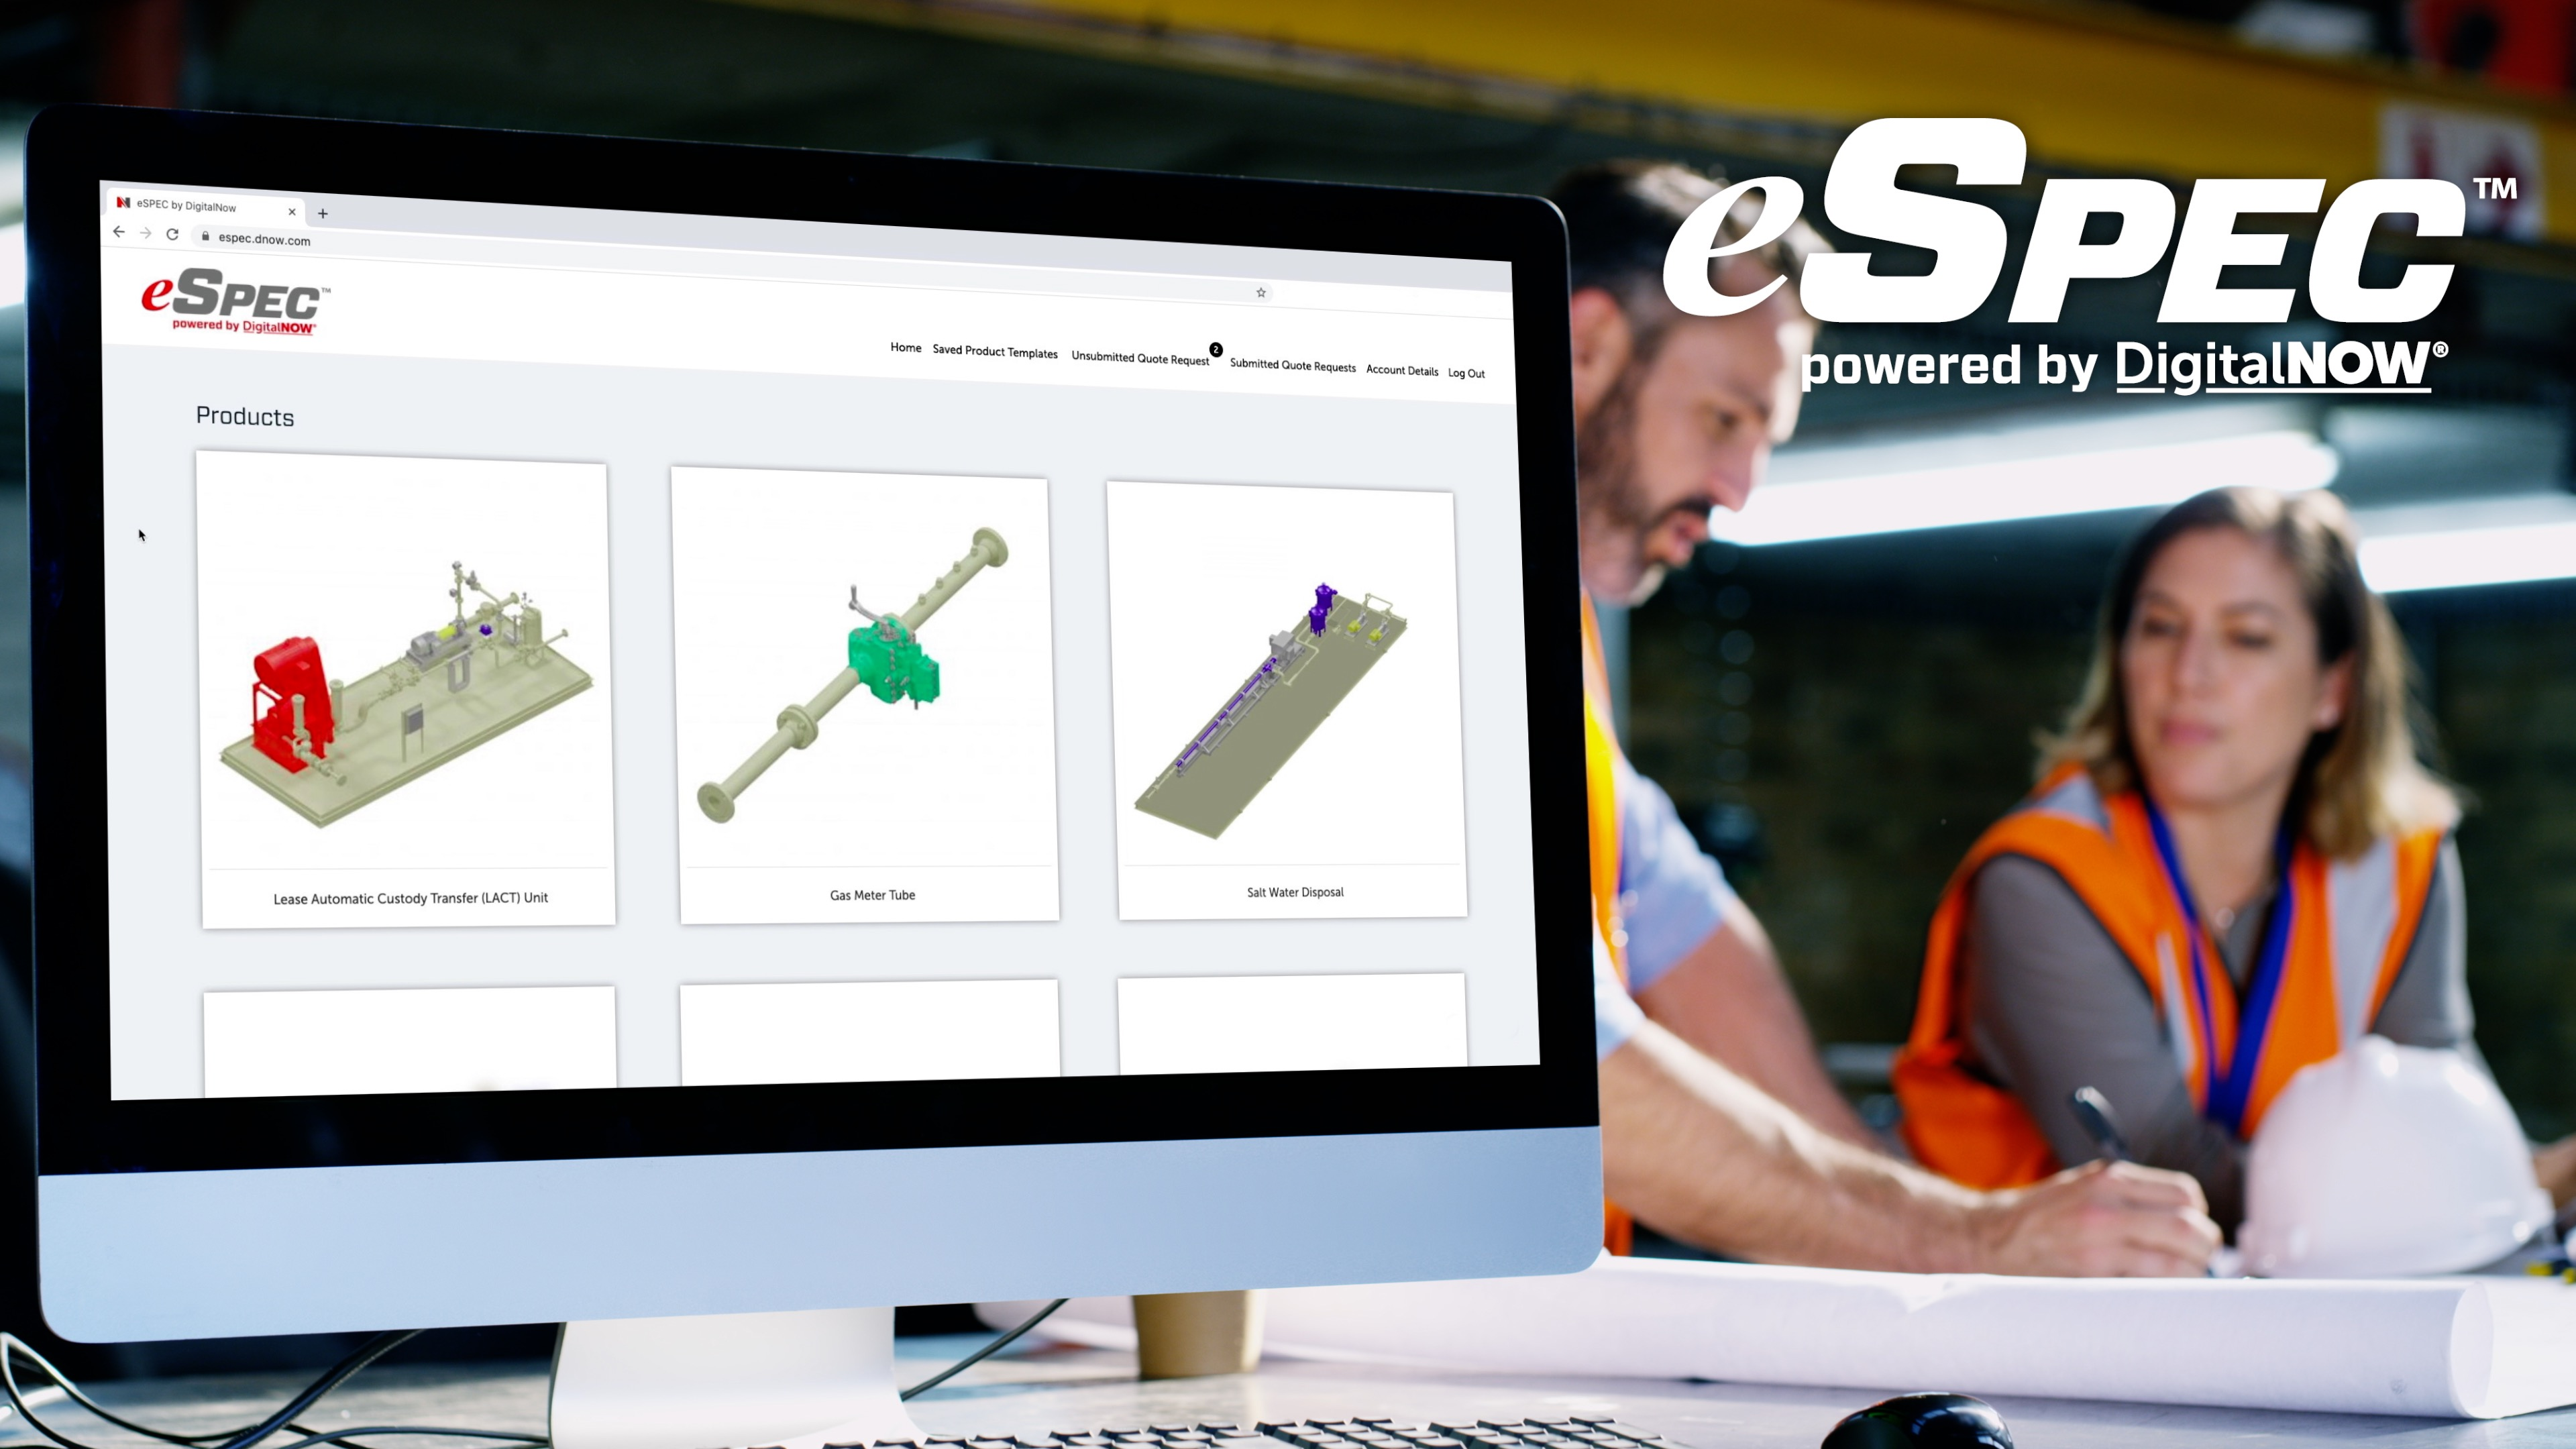 eSpec powered by DigitalNOW - Product Configurator